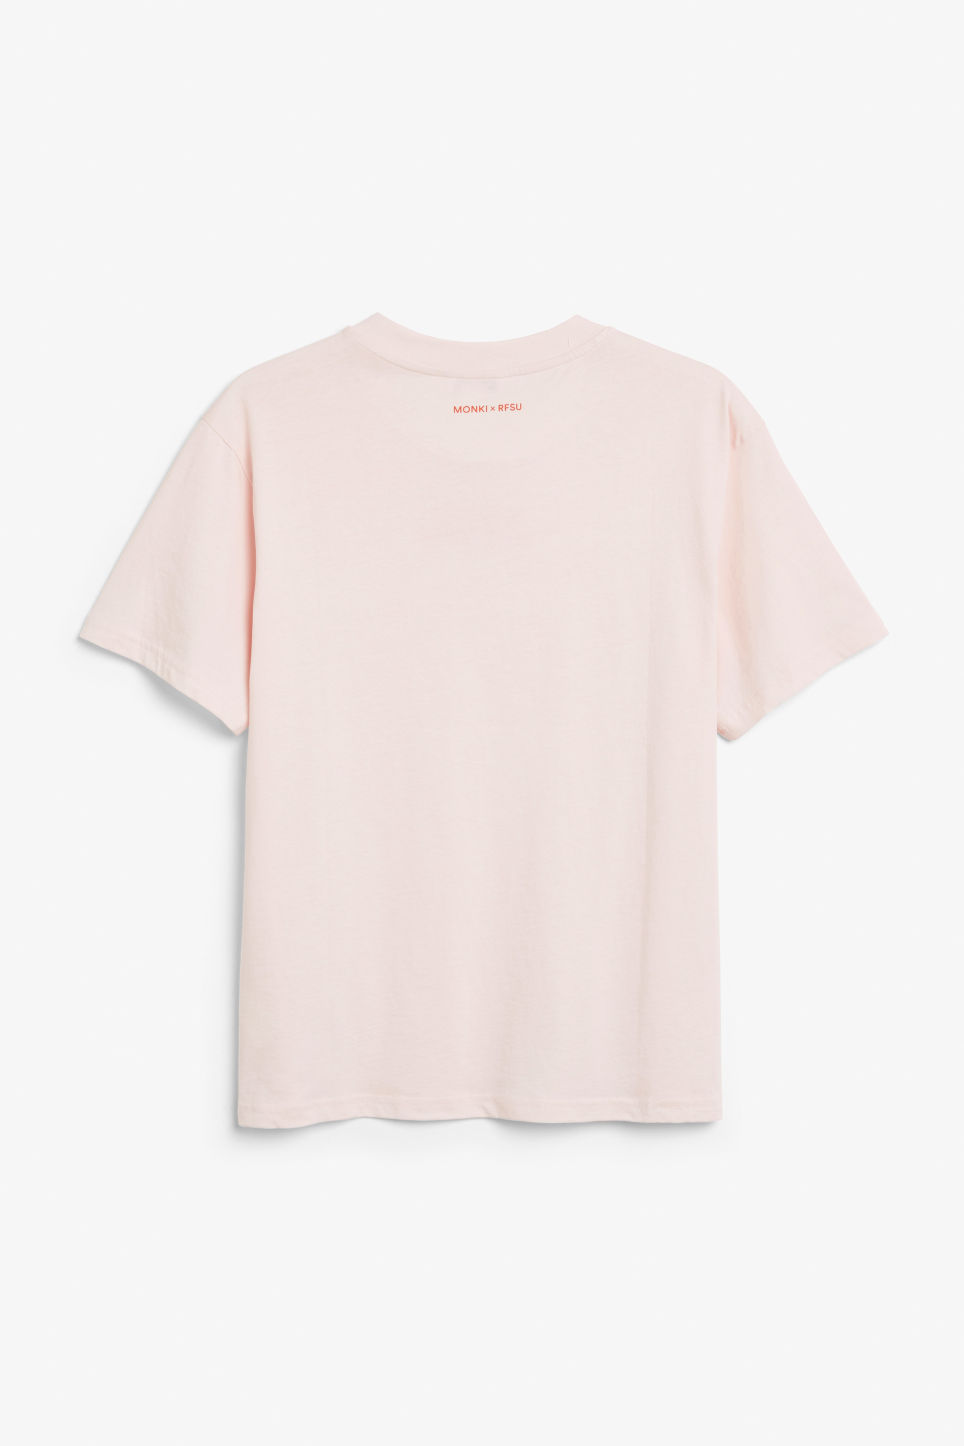 Back image of Monki null in pink